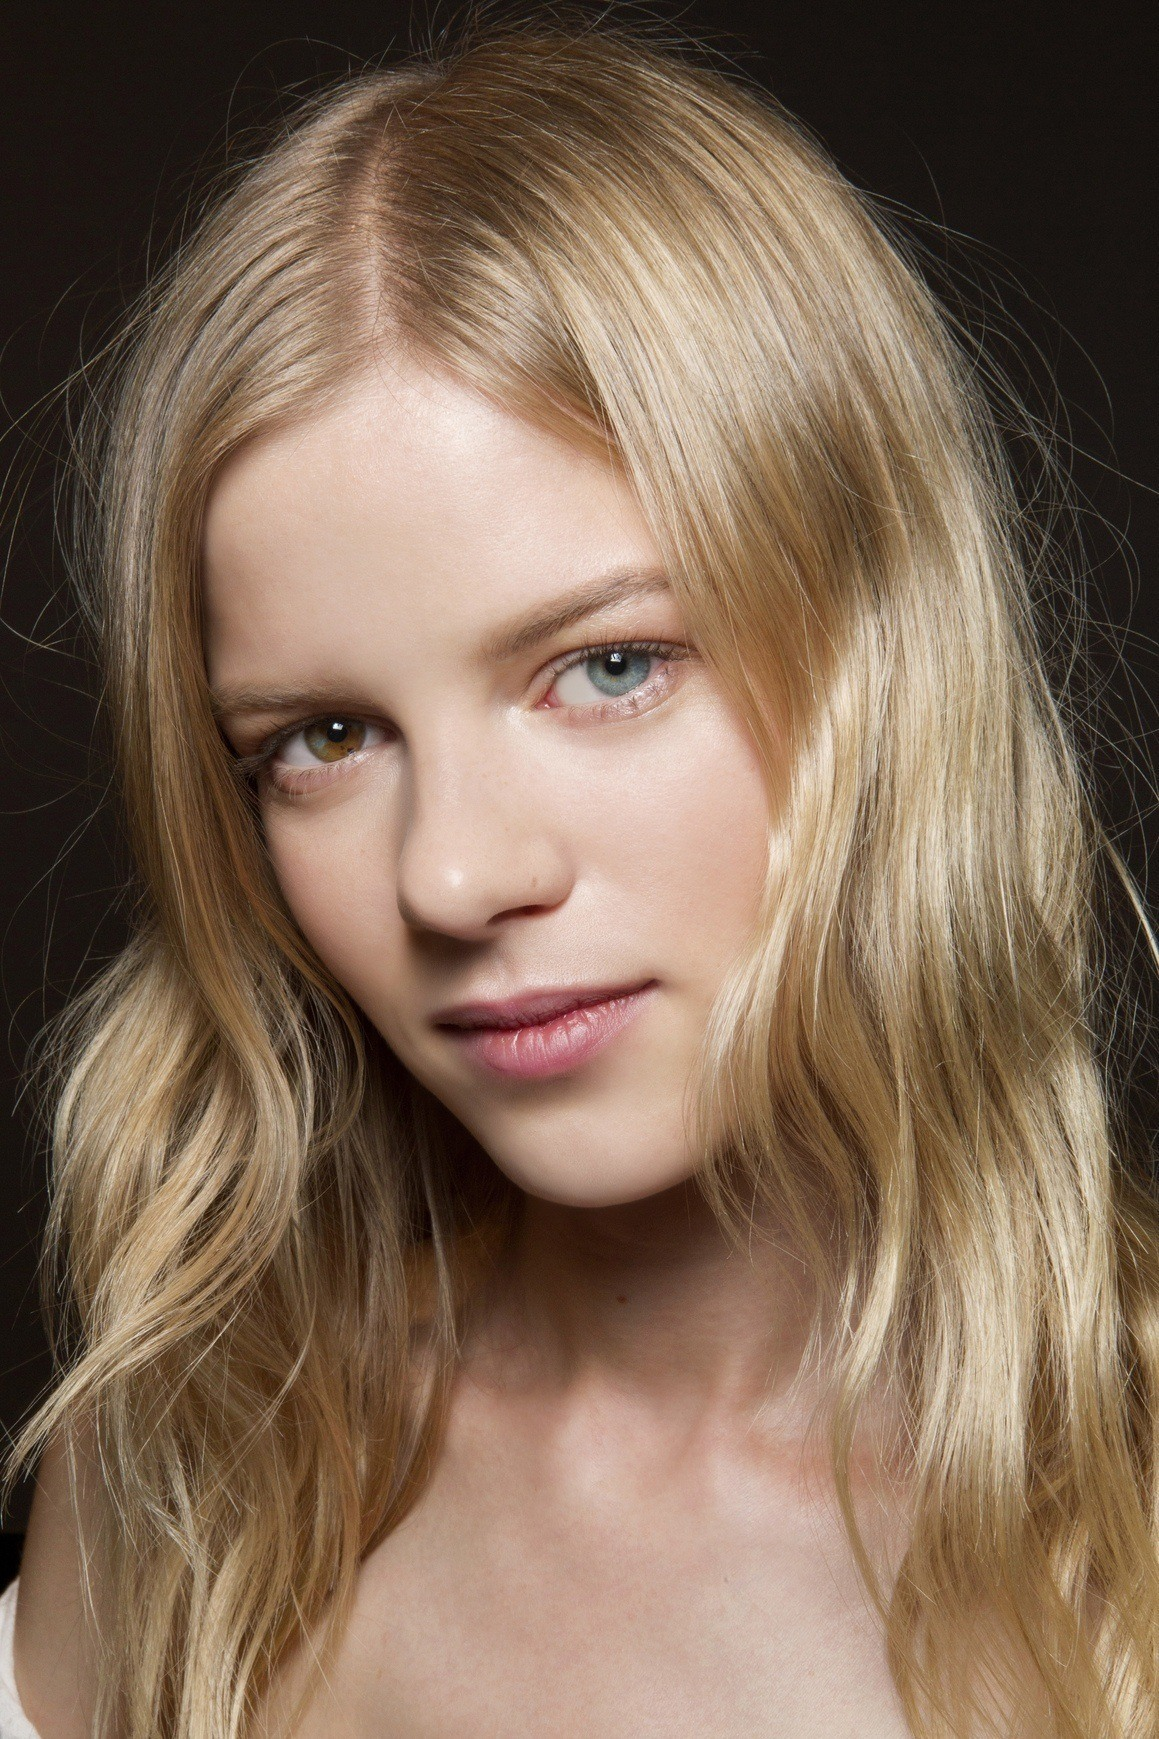 french girl waves are new hairstyles for spring we love